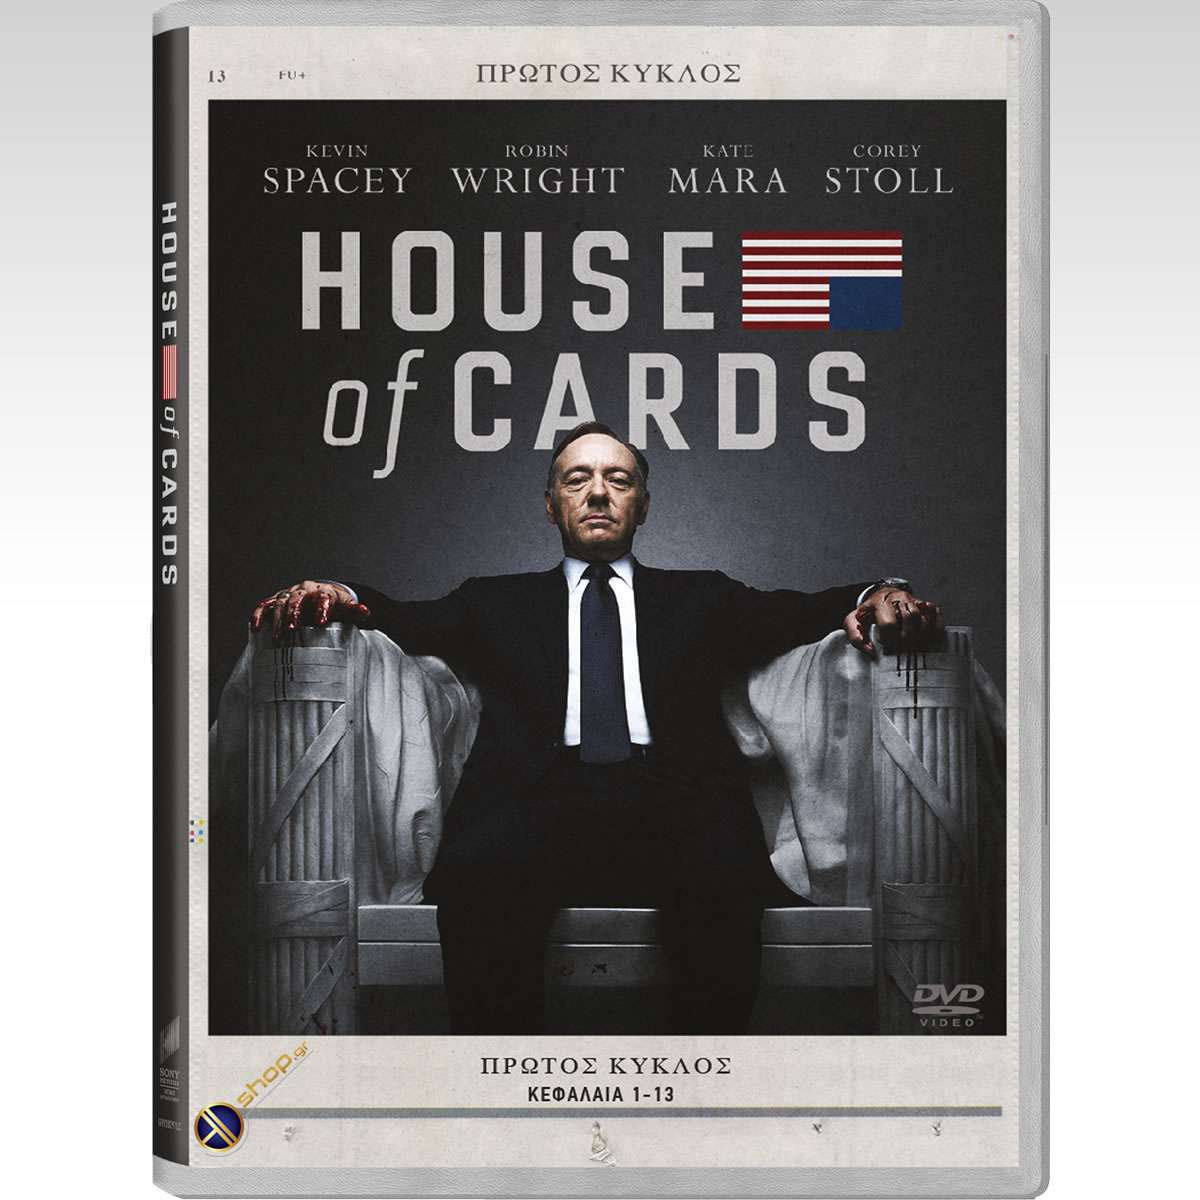 HOUSE OF CARDS Season 1 - HOUSE OF CARDS 1ος ΚΥΚΛΟΣ (4 DVDs)